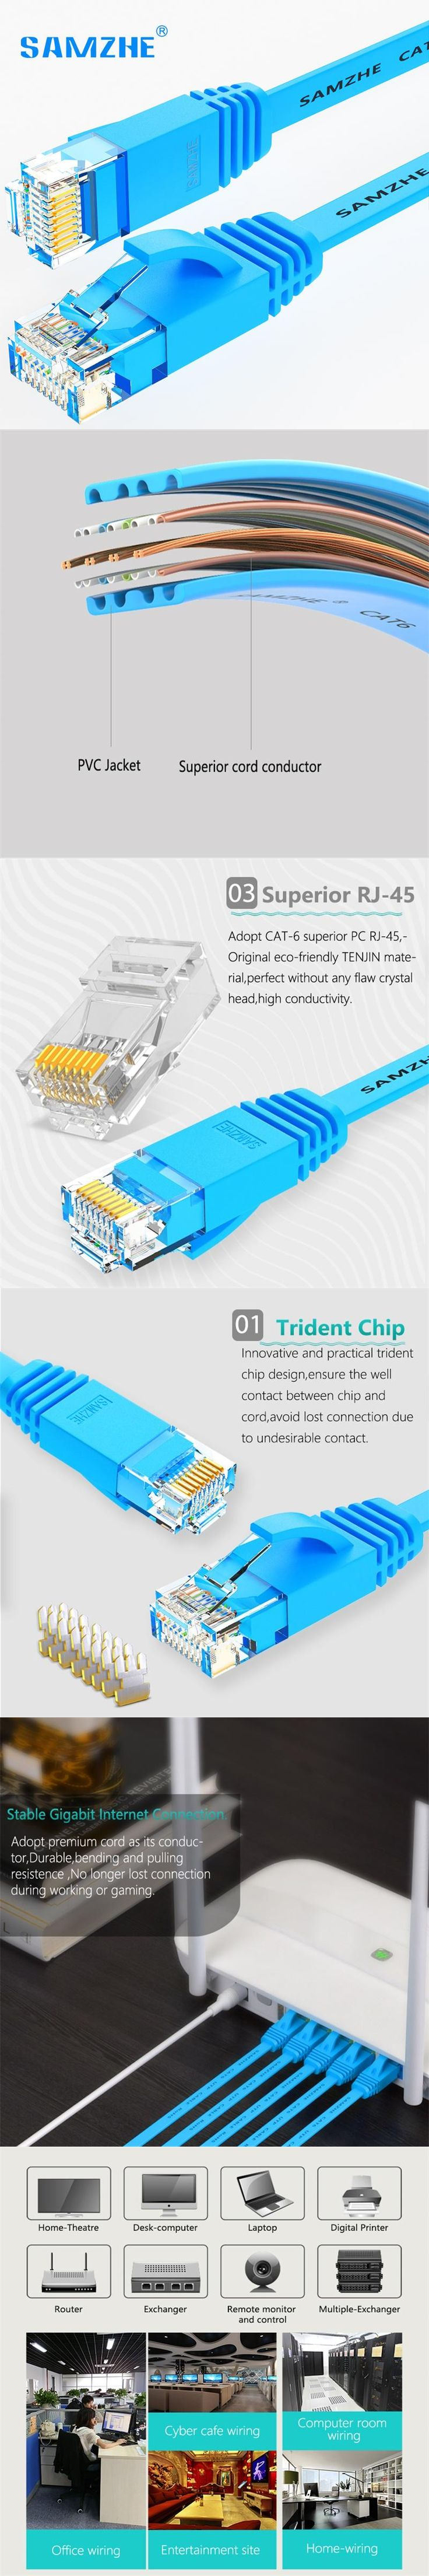 SAMZHE Ethernet Cable RJ45 lan cable cat6 Flat 1000Mbps CAT 6 Network cable cavo Ethernet for Computer Router Laptop ps4 PC